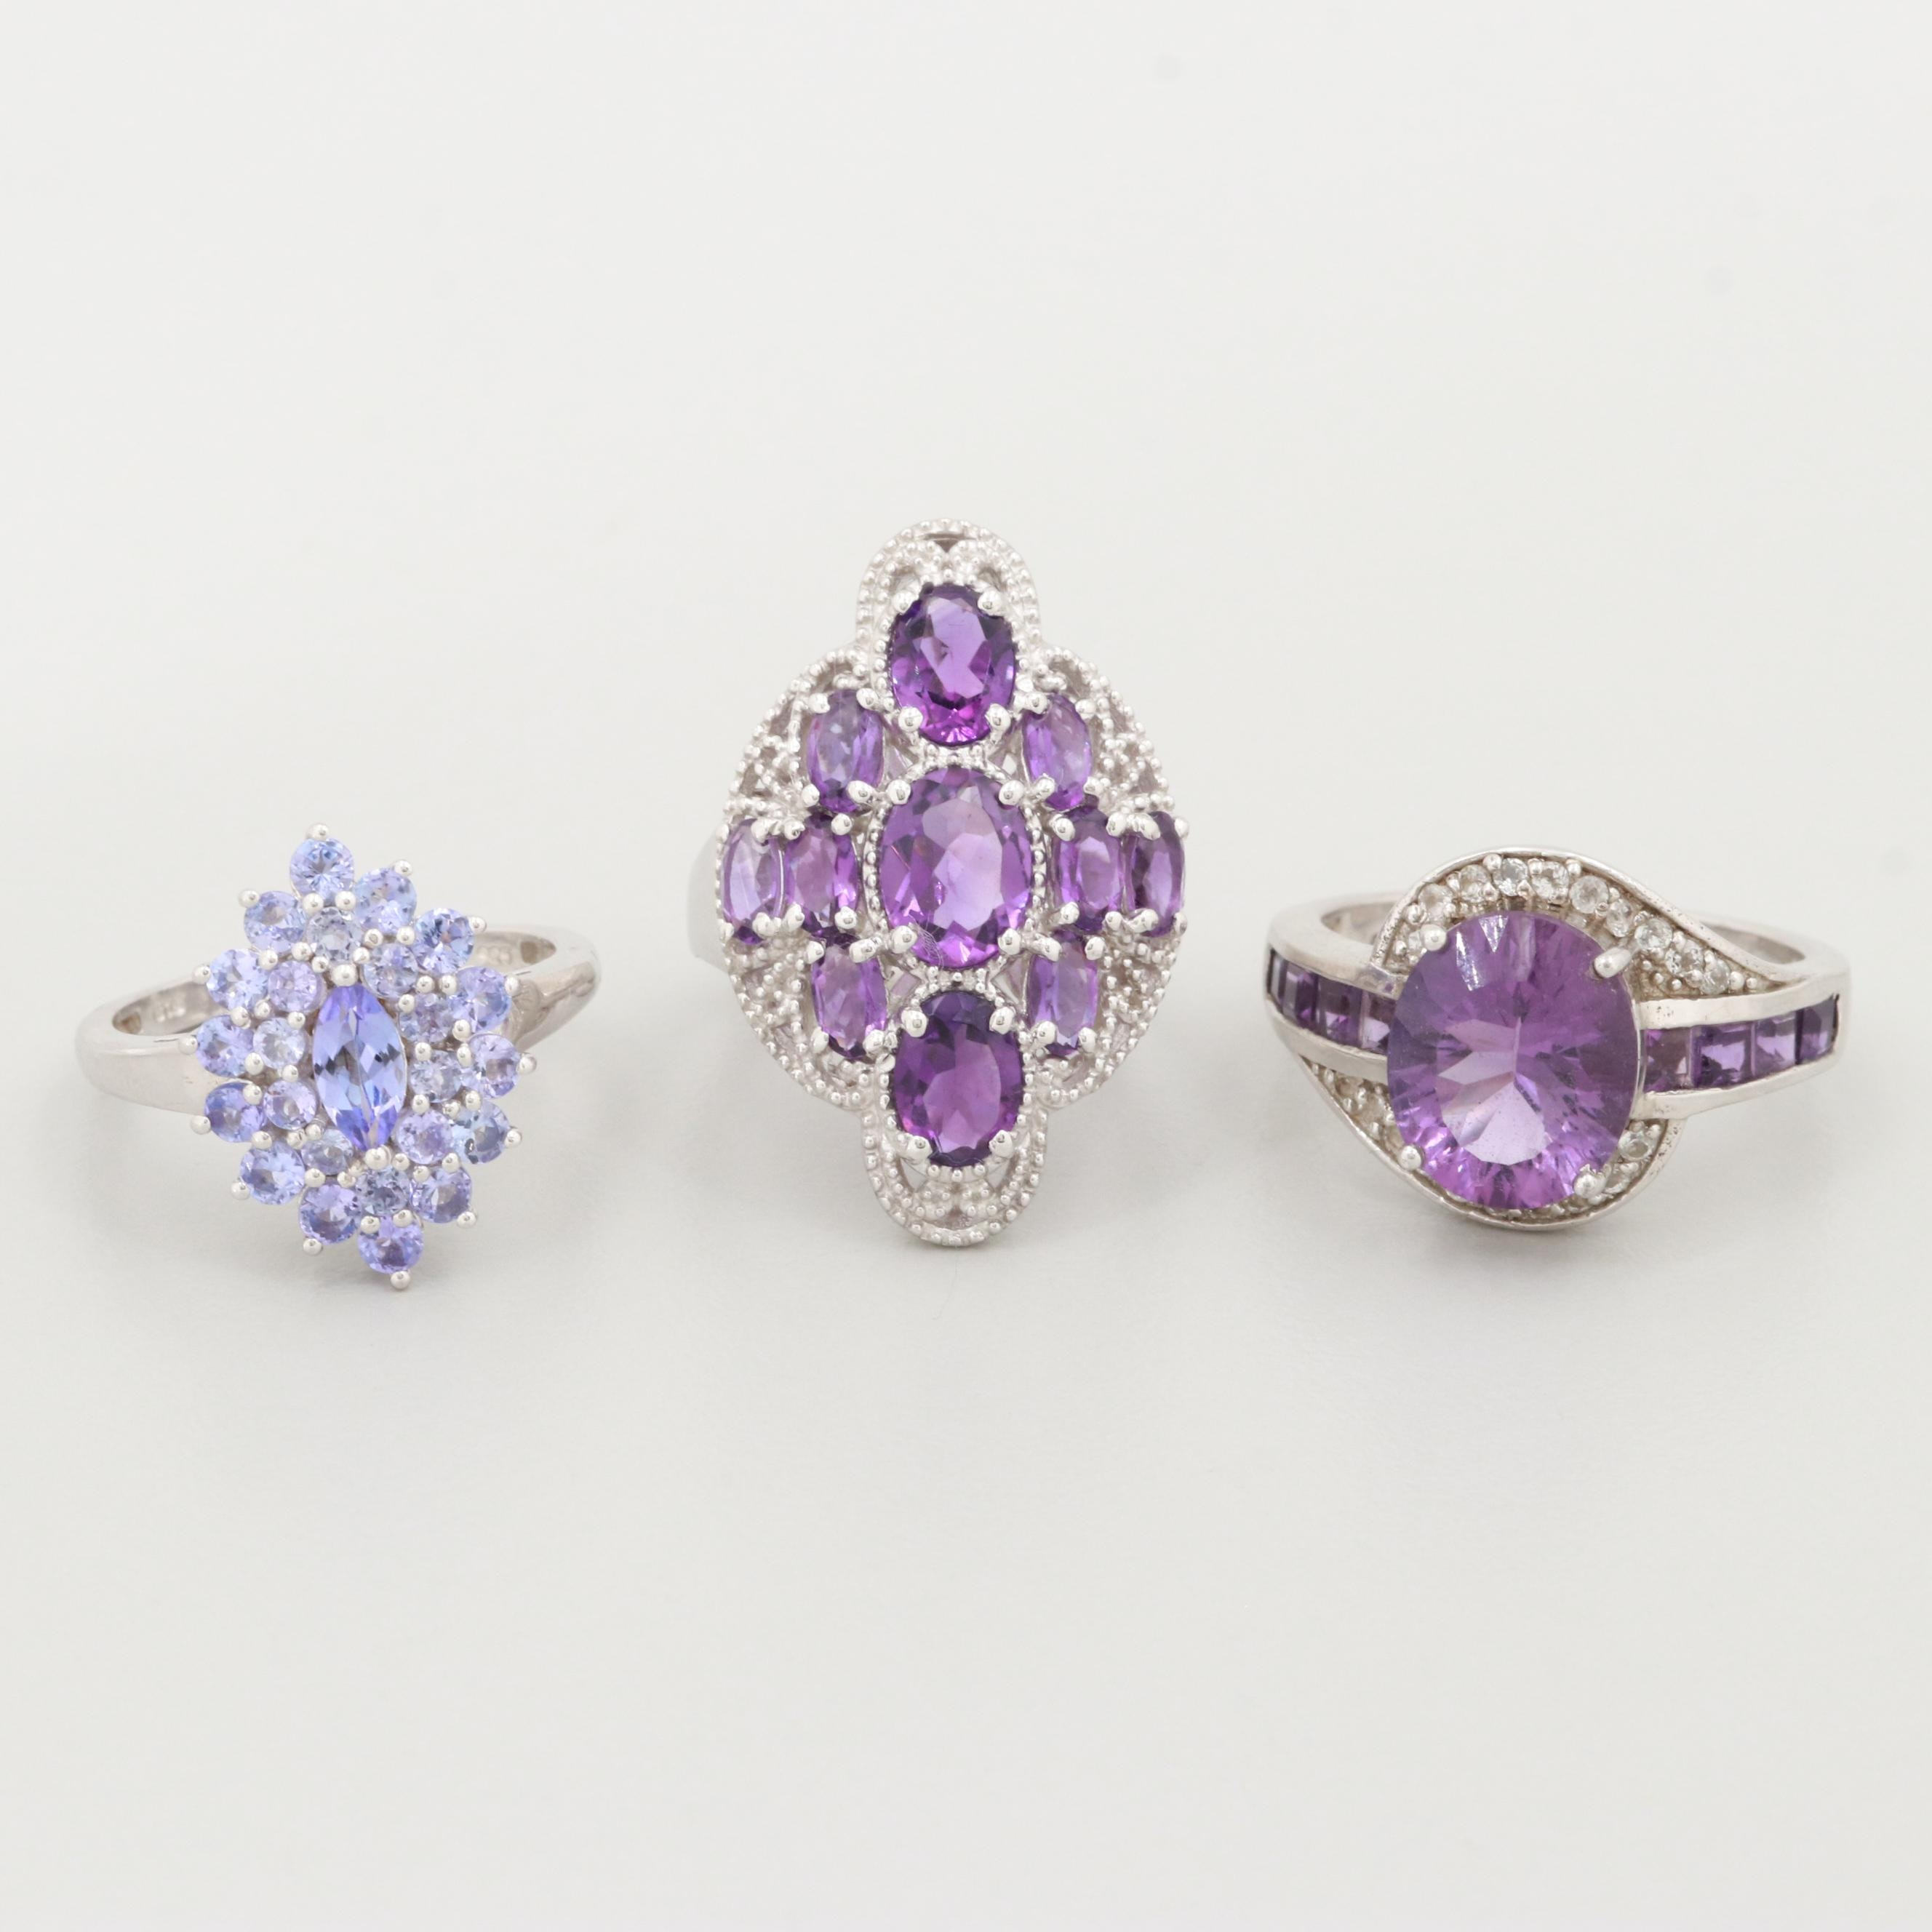 Sterling Silver Gemstone Rings Including Amethyst, Tanzanite and White Sapphire